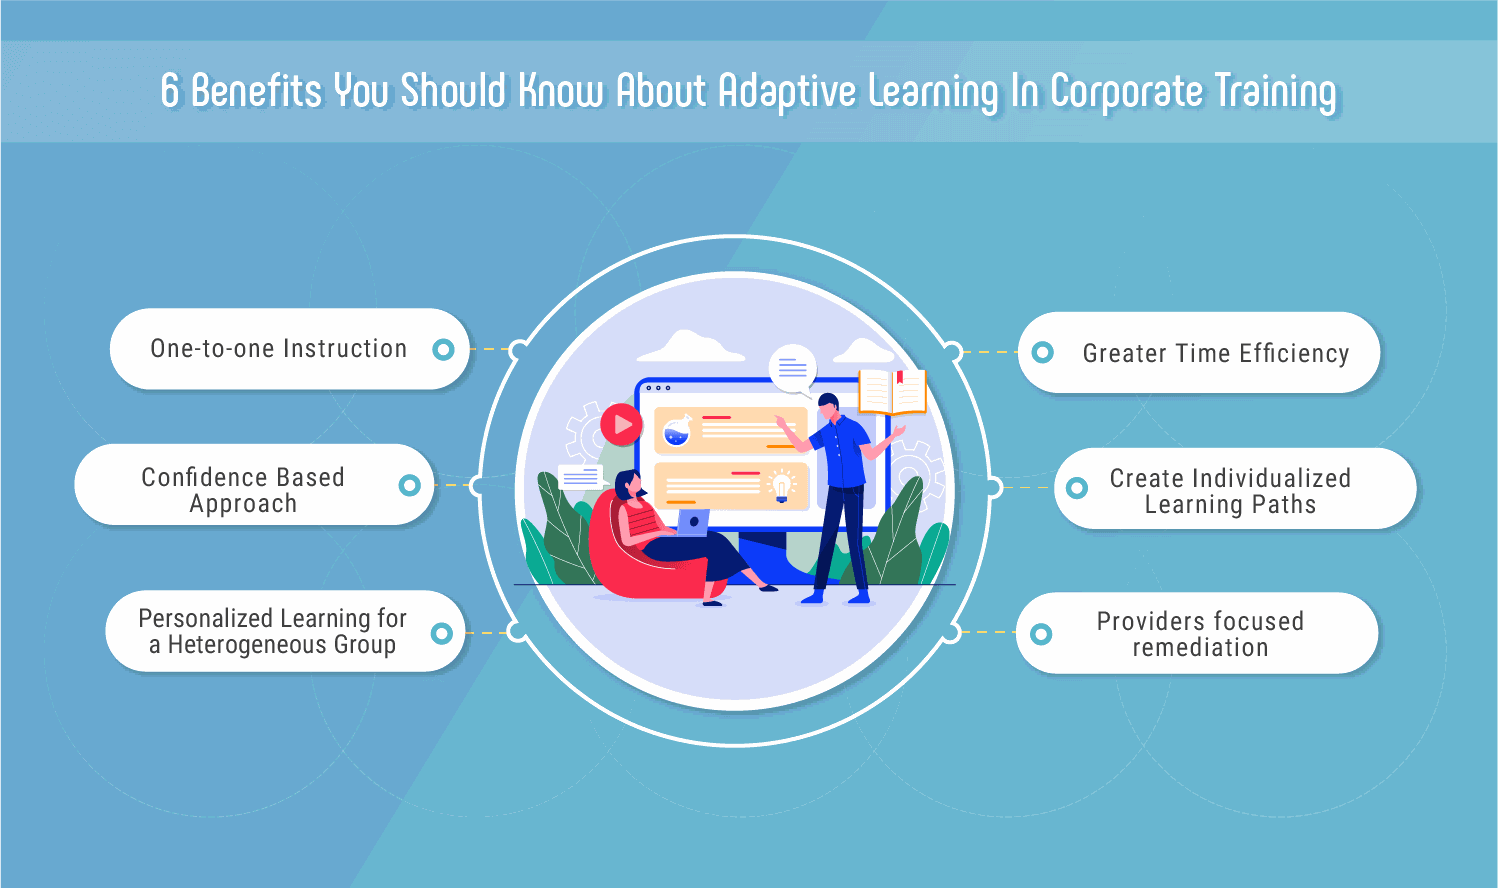 Adaptive Learning in Corporate Training